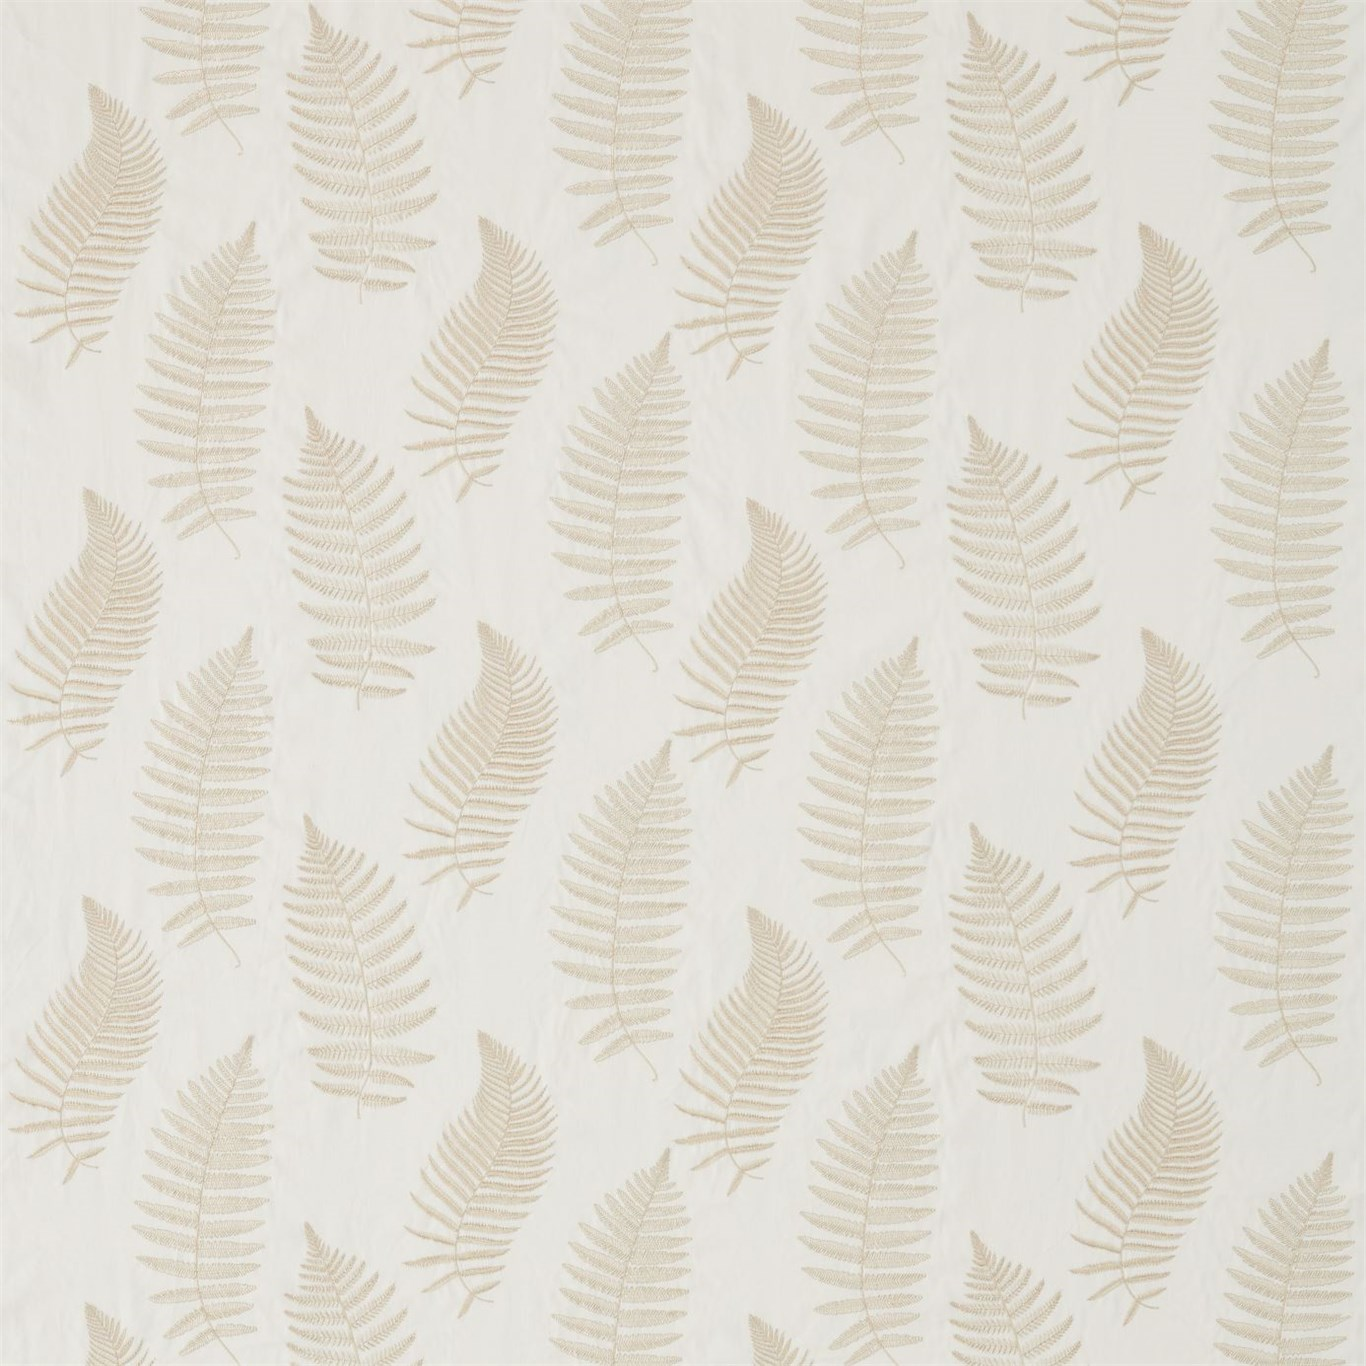 FERN EMBROIDERY IVORY